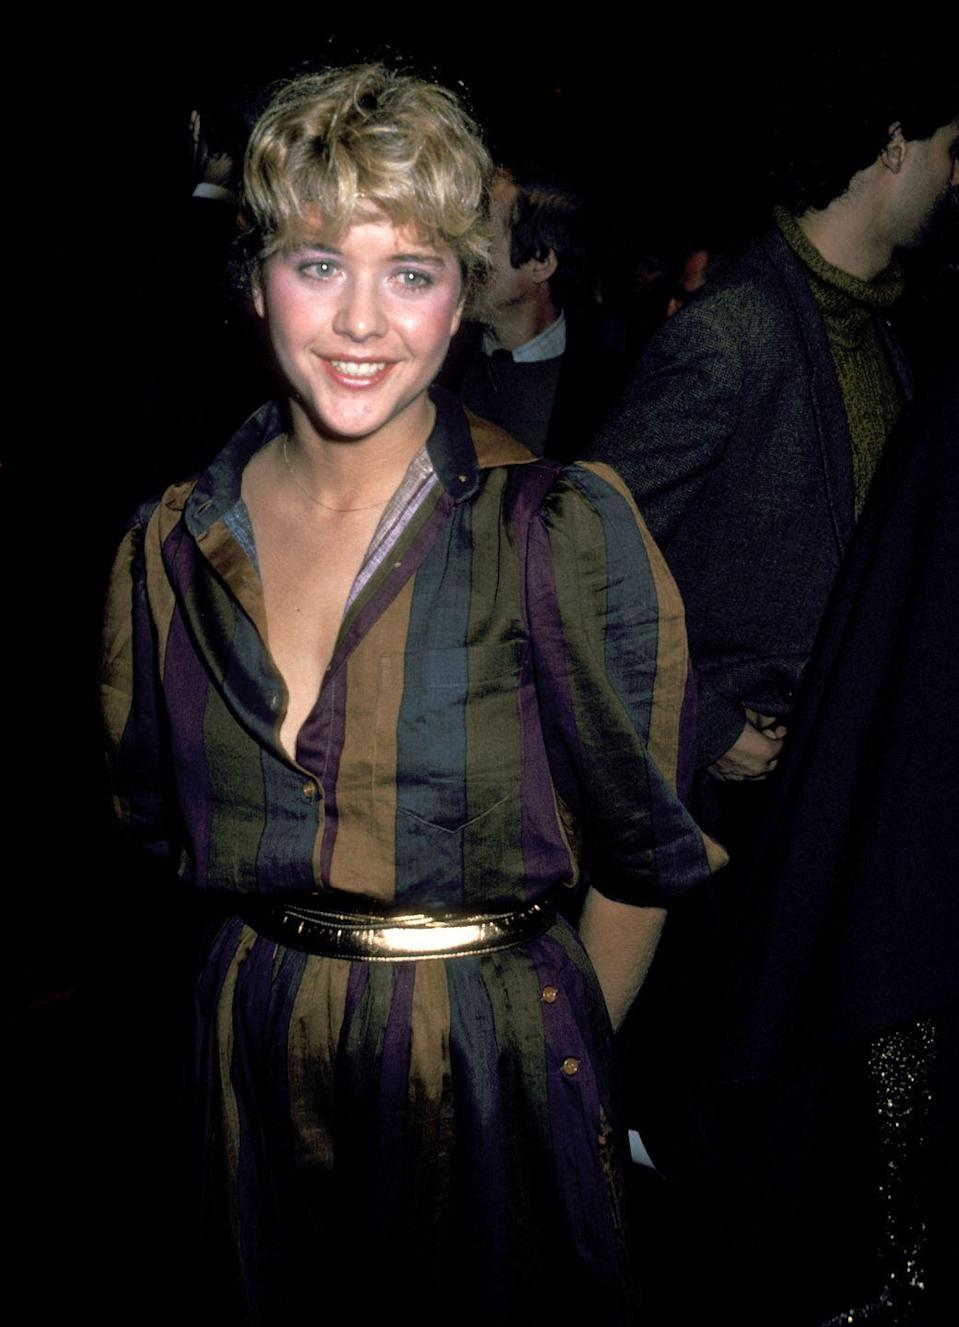 <p>Meg Ryan became a household name after starring in some of the most popular romantic comedies from the '80s and '90s, including <em>When Harry Met Sally </em>and <em>Sleepless in Seattle. </em>But back in 1981, the actress was just getting started when she made her red carpet debut for her first film <em>Rich and Famous. </em></p>